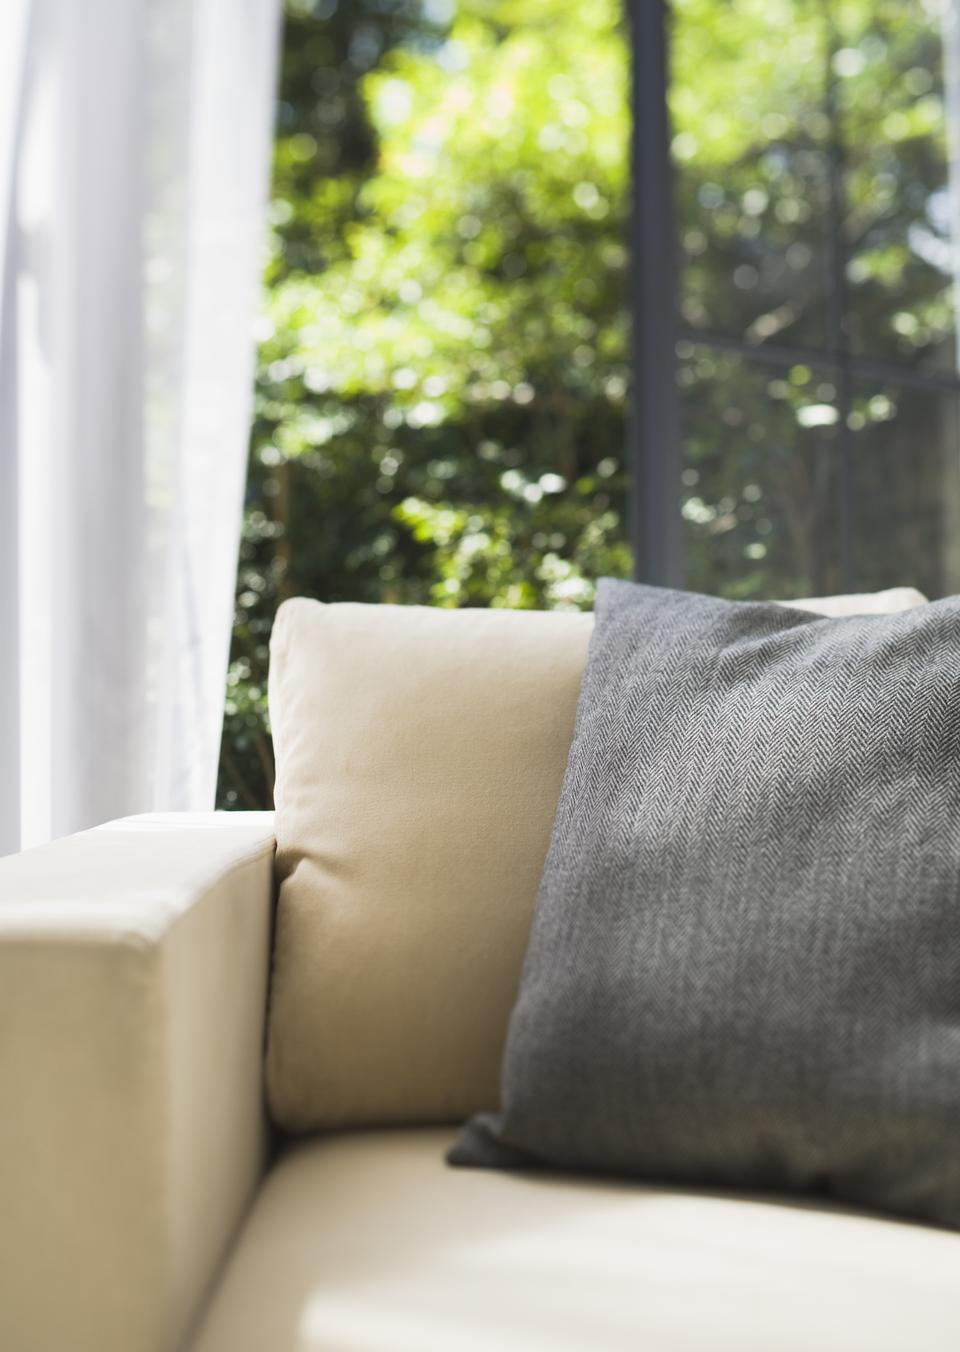 Decorative pillows on a casual sofa in the living room